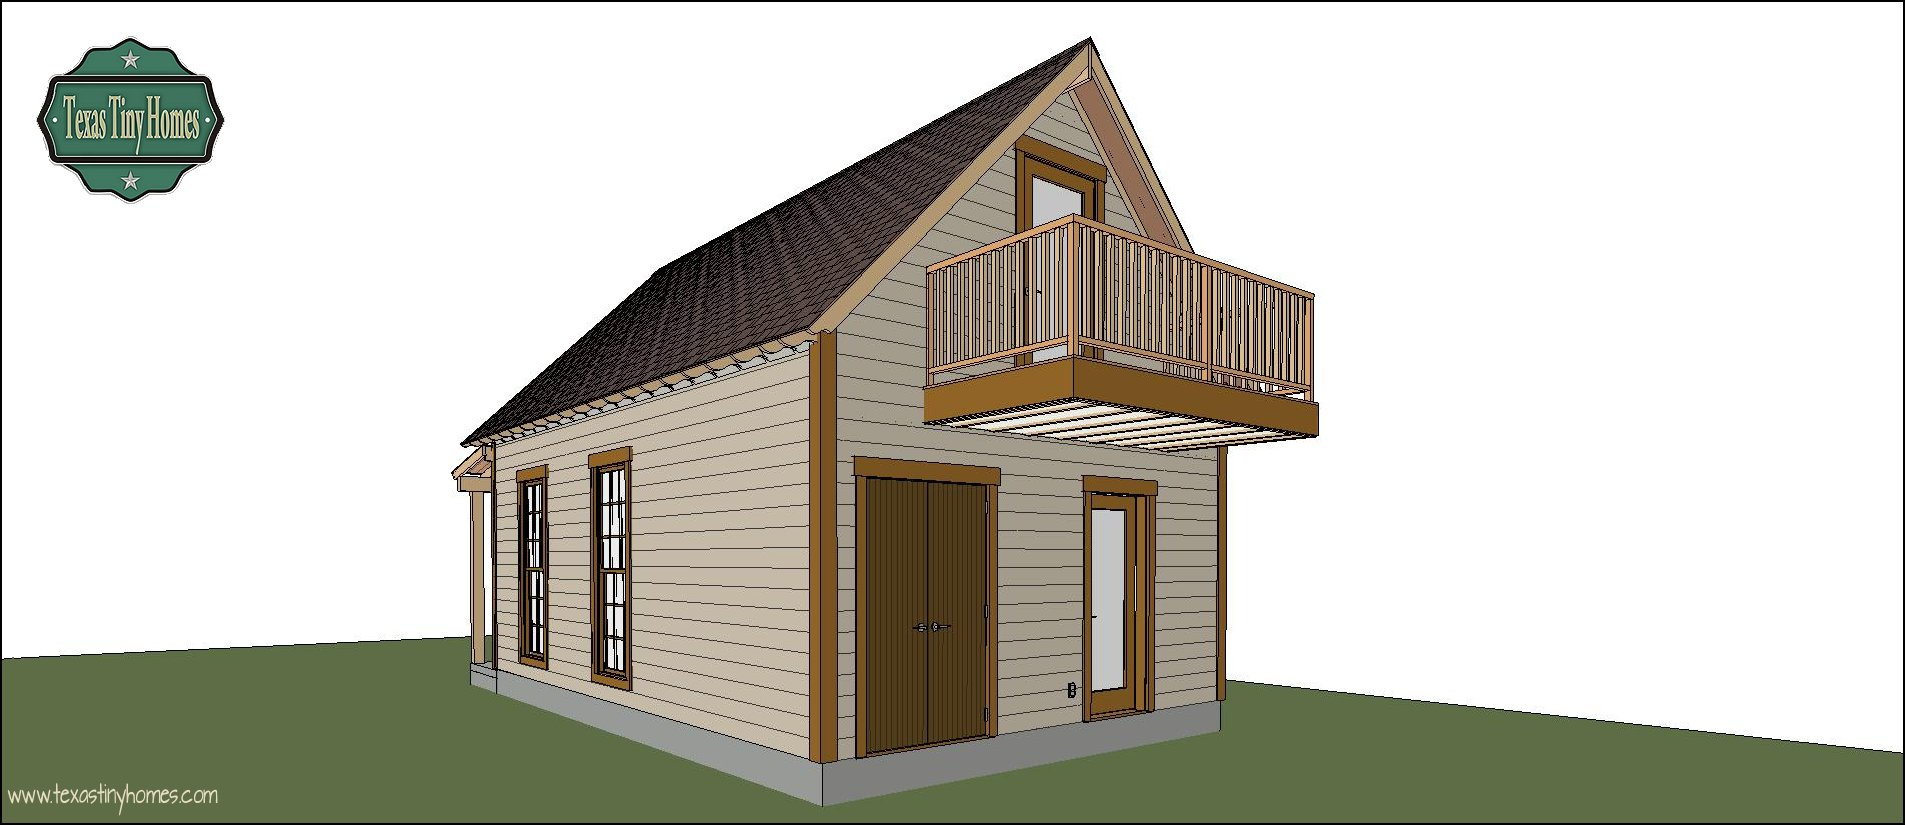 Texas tiny homes plan 572 for Small house plans texas